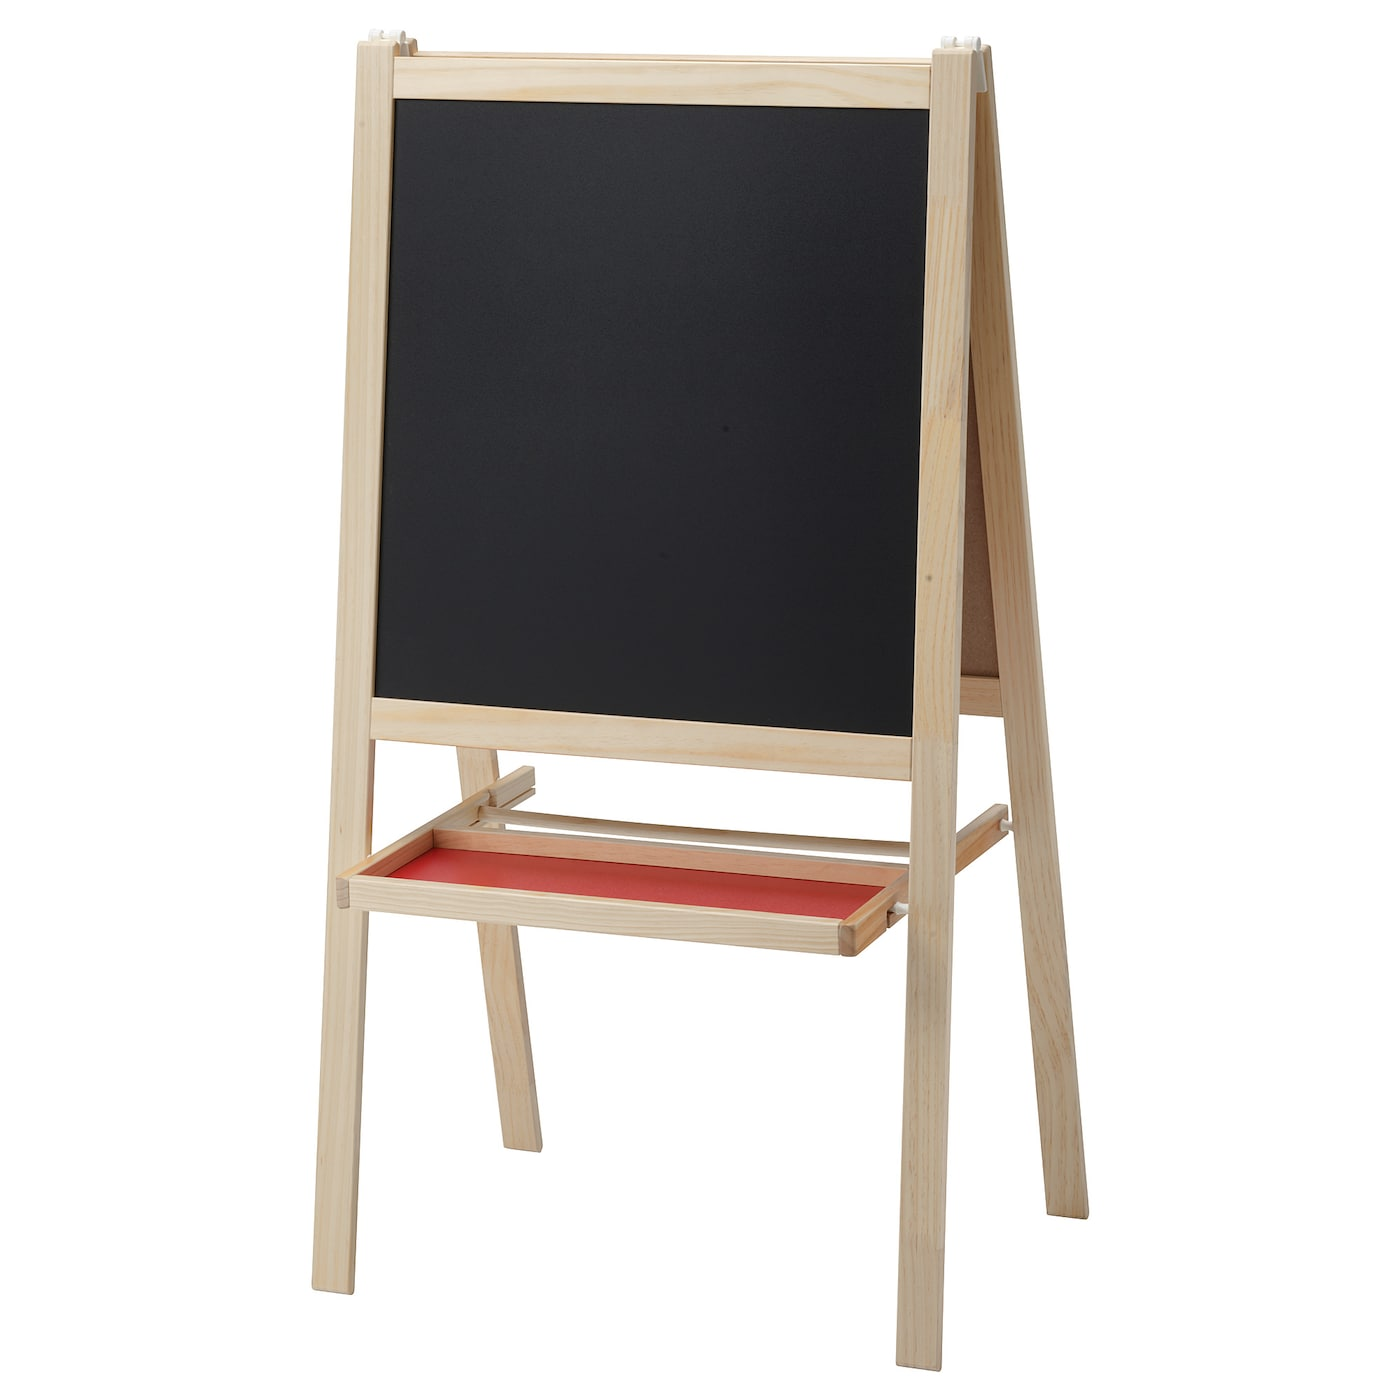 MÅLA Easel, softwood/white great for ikea classroom